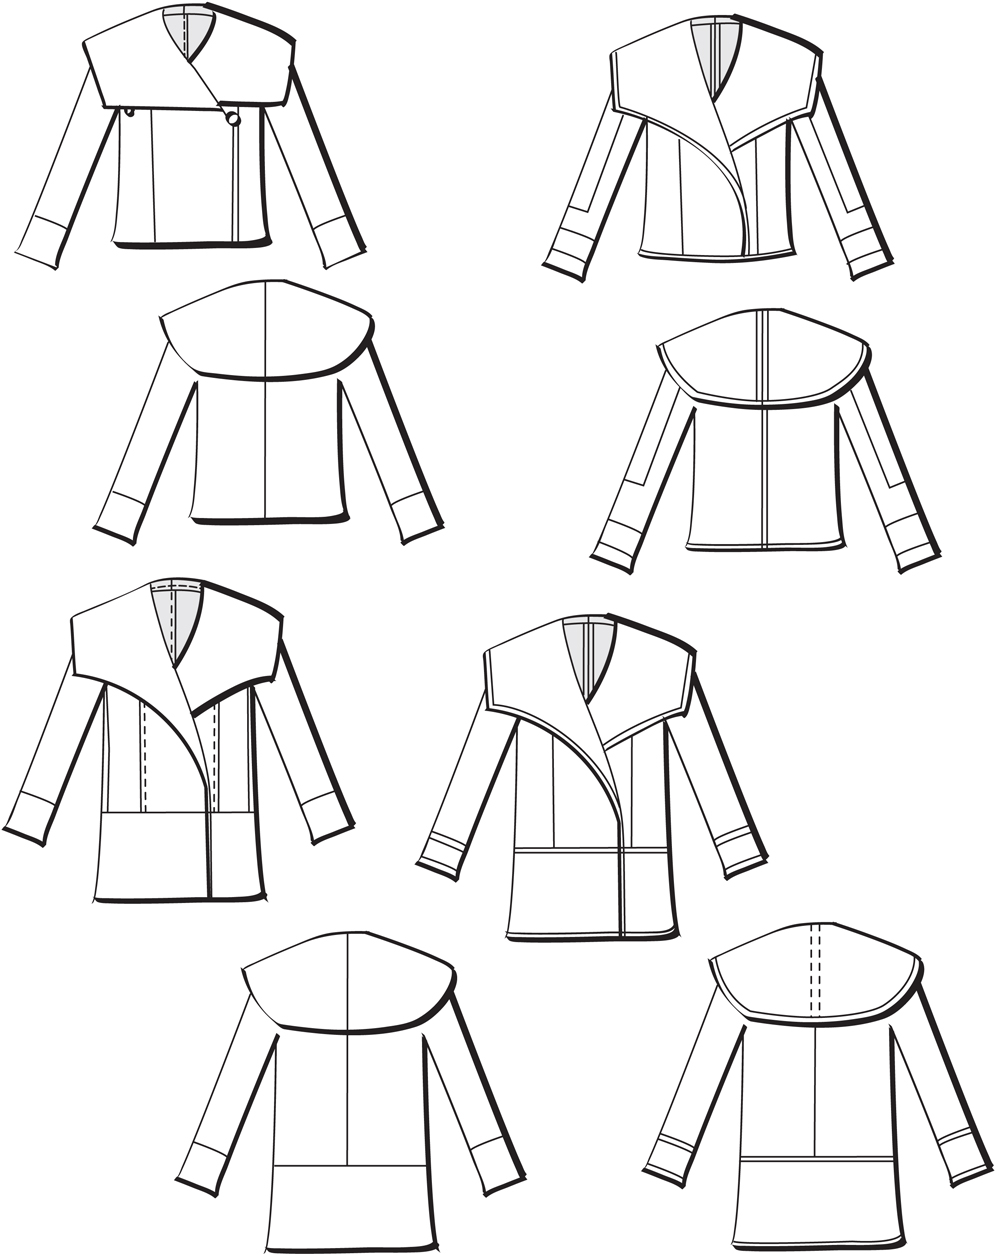 Pattern review mccalls 6656 unlined coats threads sewing tip for a reversible jacket make a double cloth version with flat felled seams jeuxipadfo Gallery